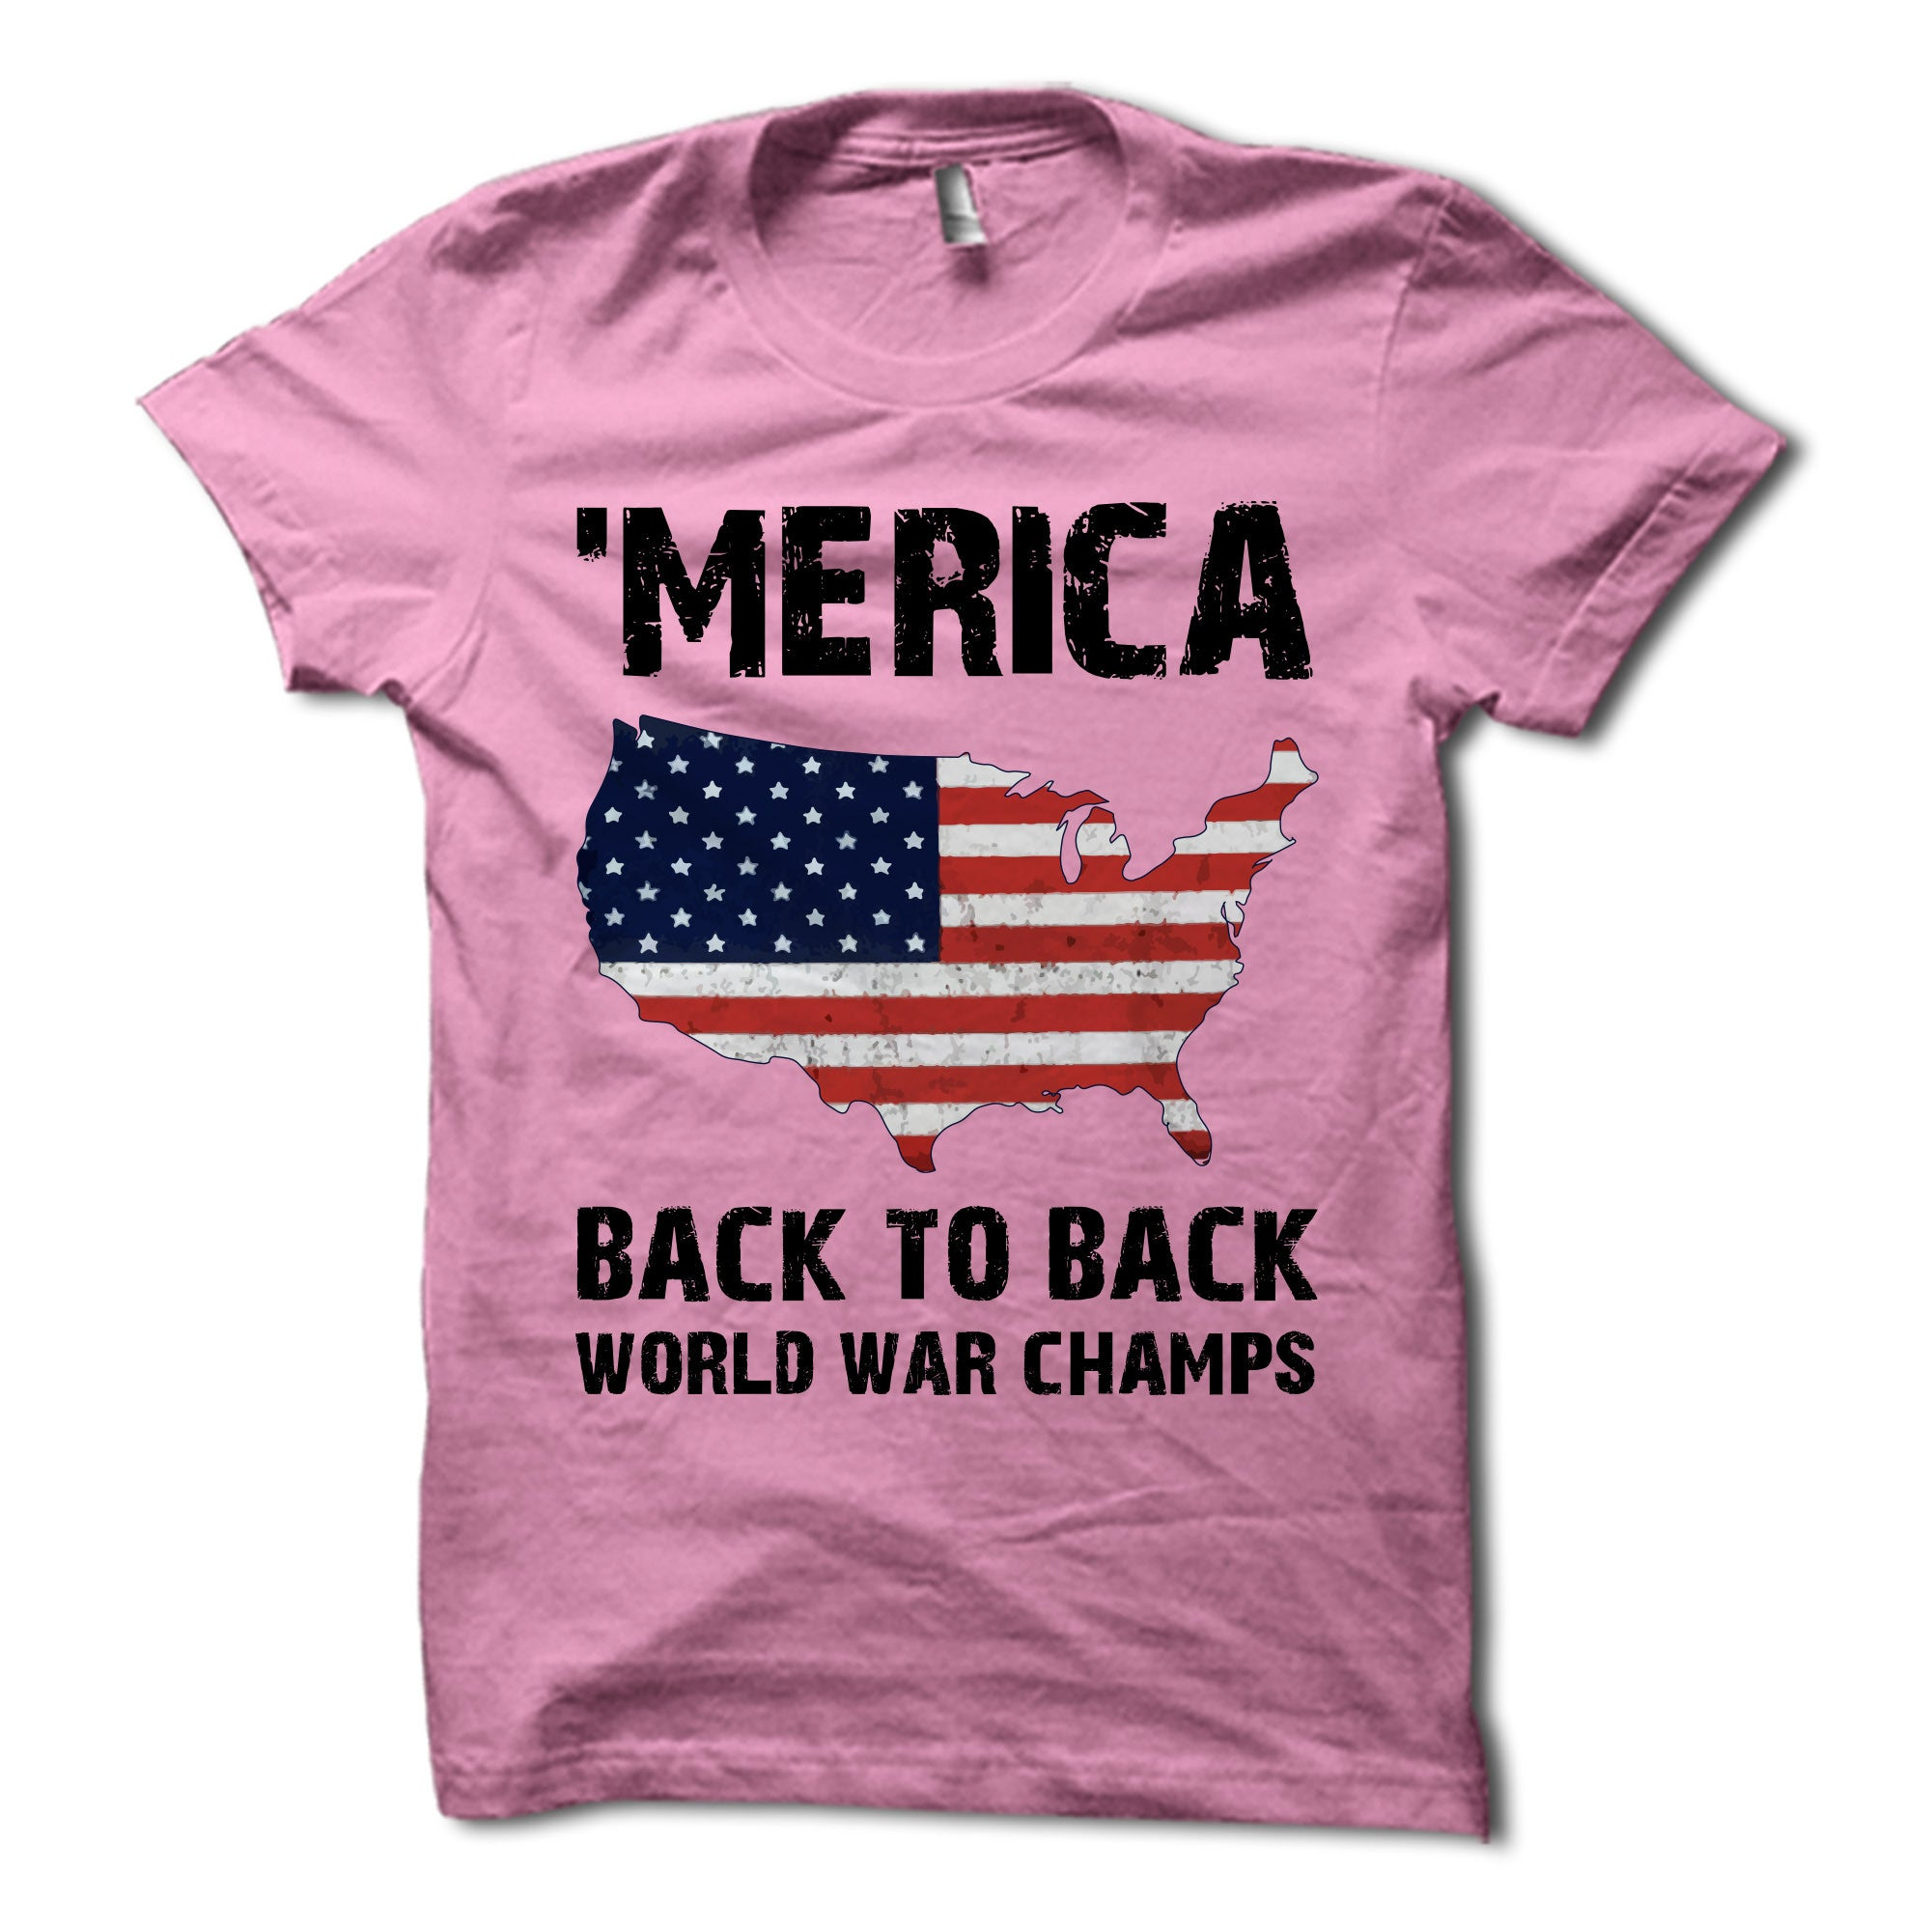 c91fe7f9 MERICA Back to Back World War Champs USA Shirt – Merica Supply Co.